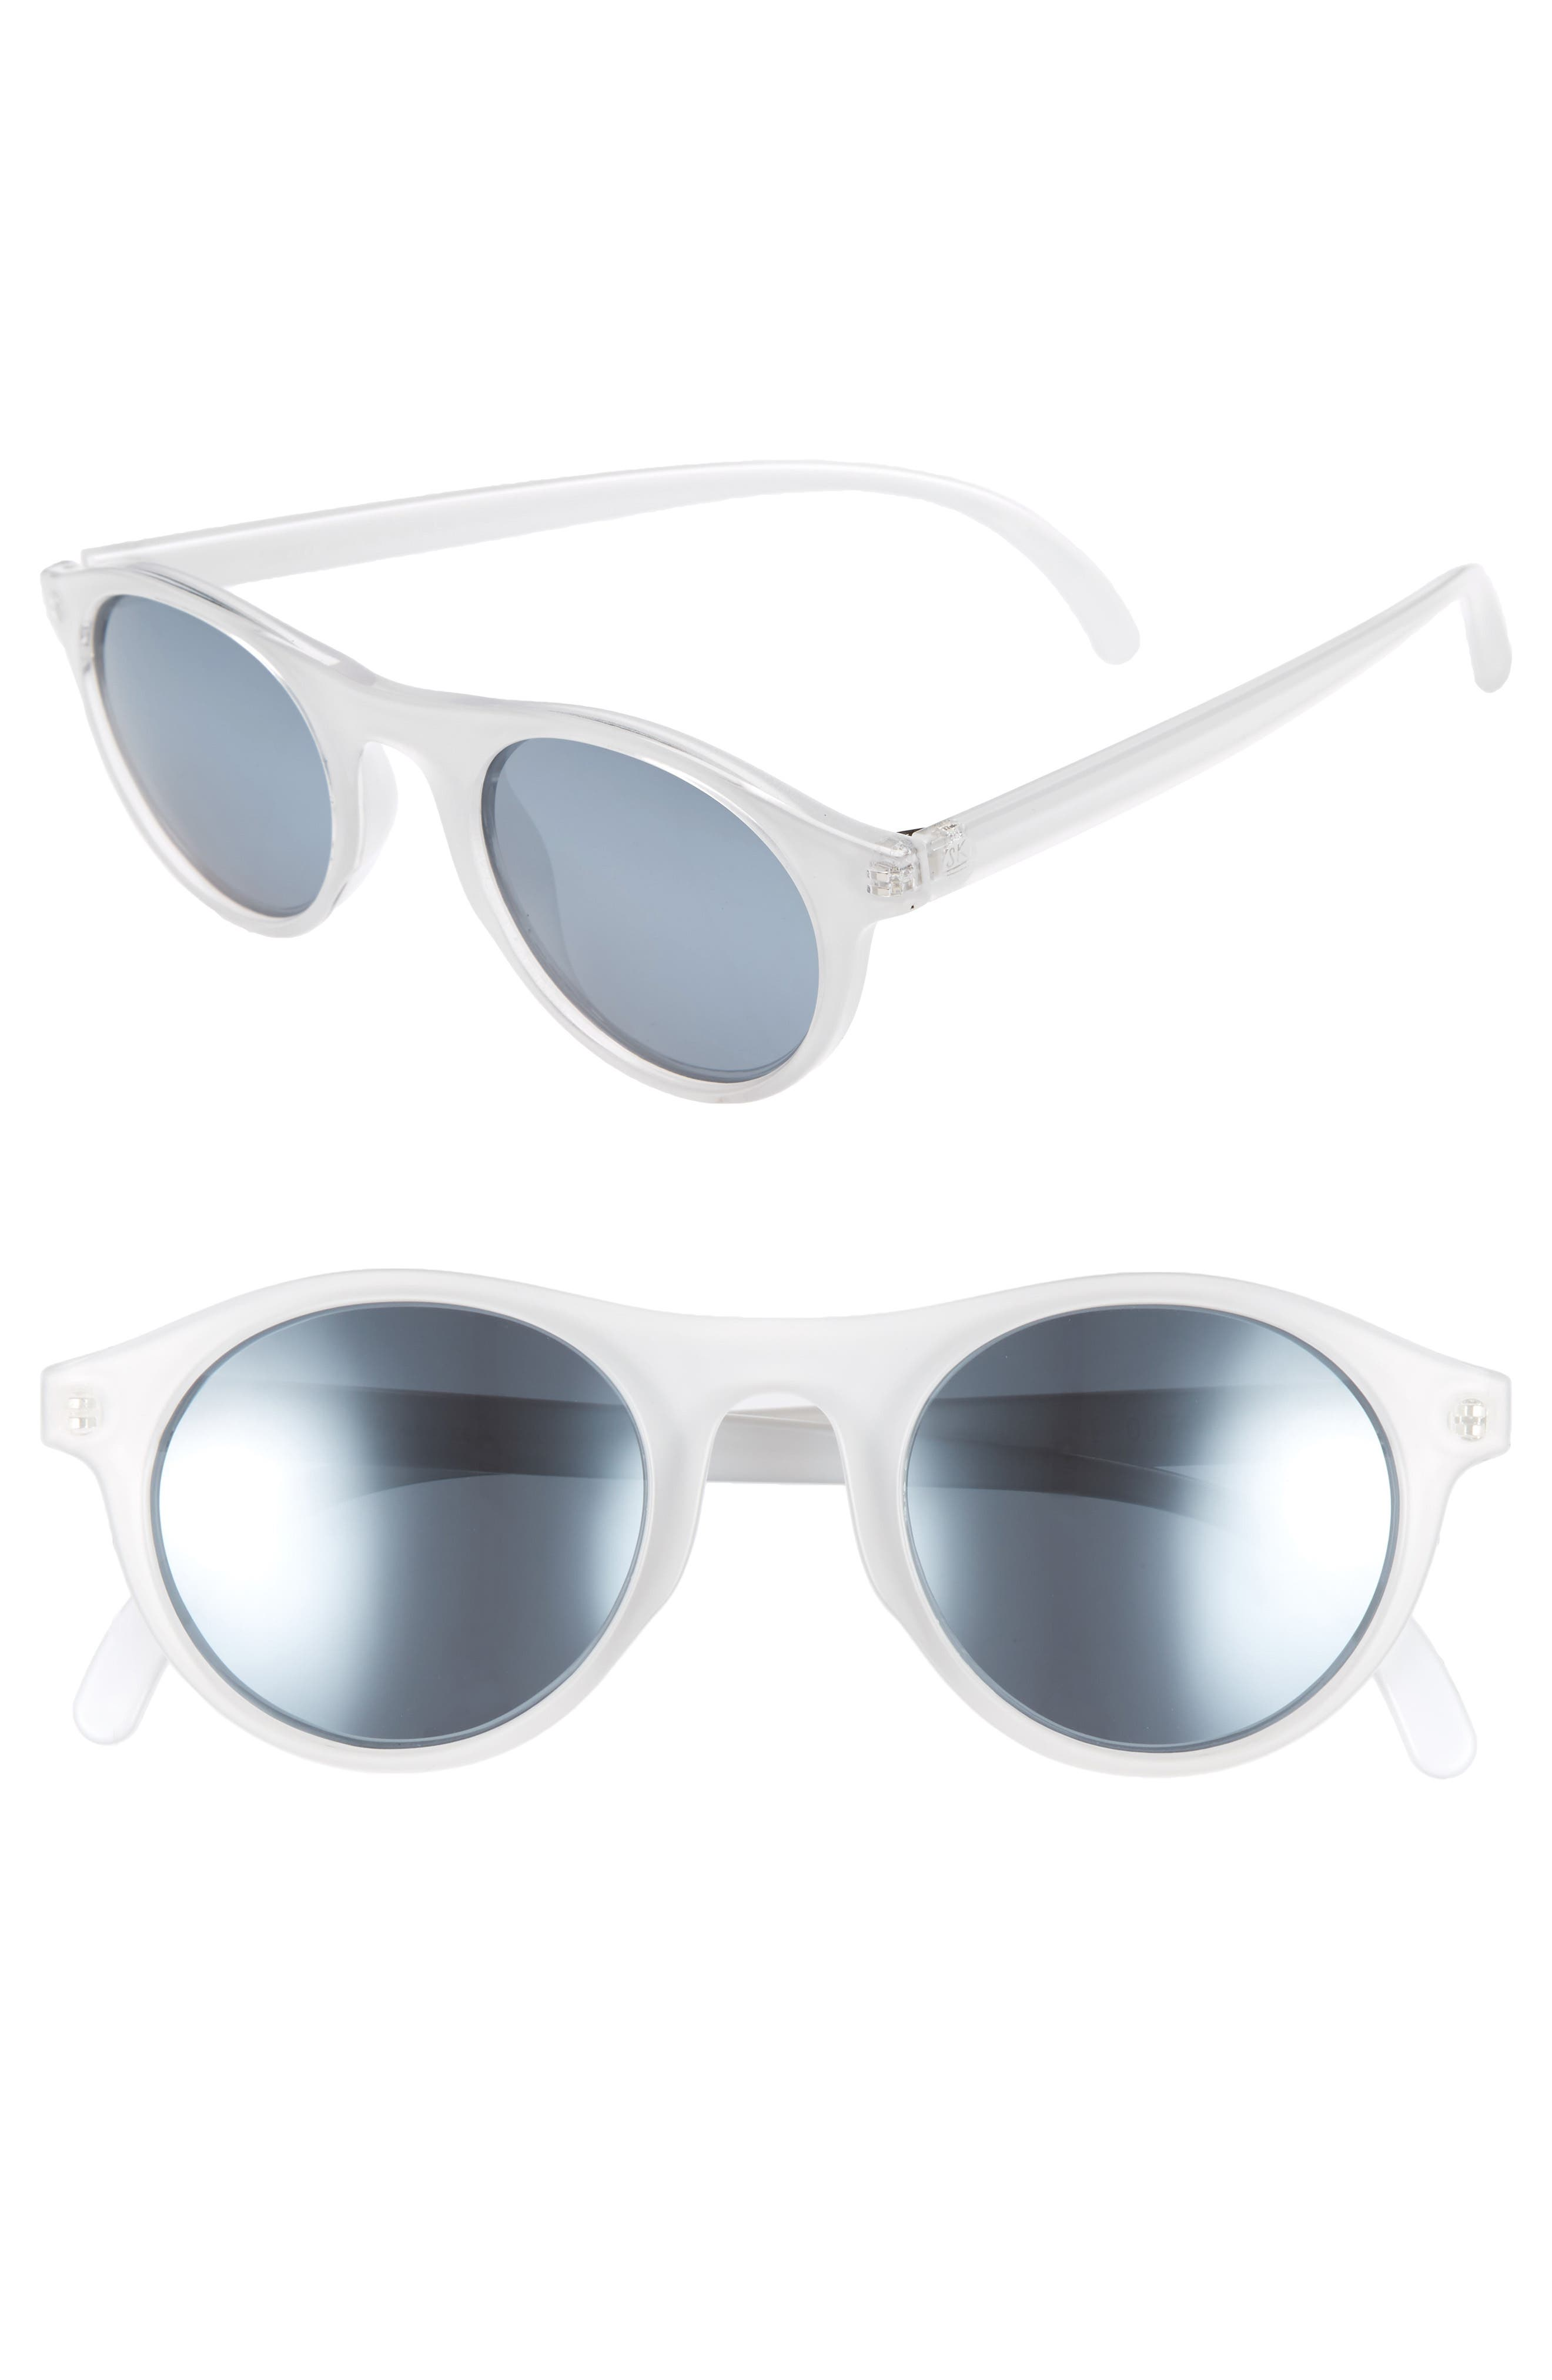 Alta 47mm Sunglasses,                             Main thumbnail 1, color,                             Snow Silver